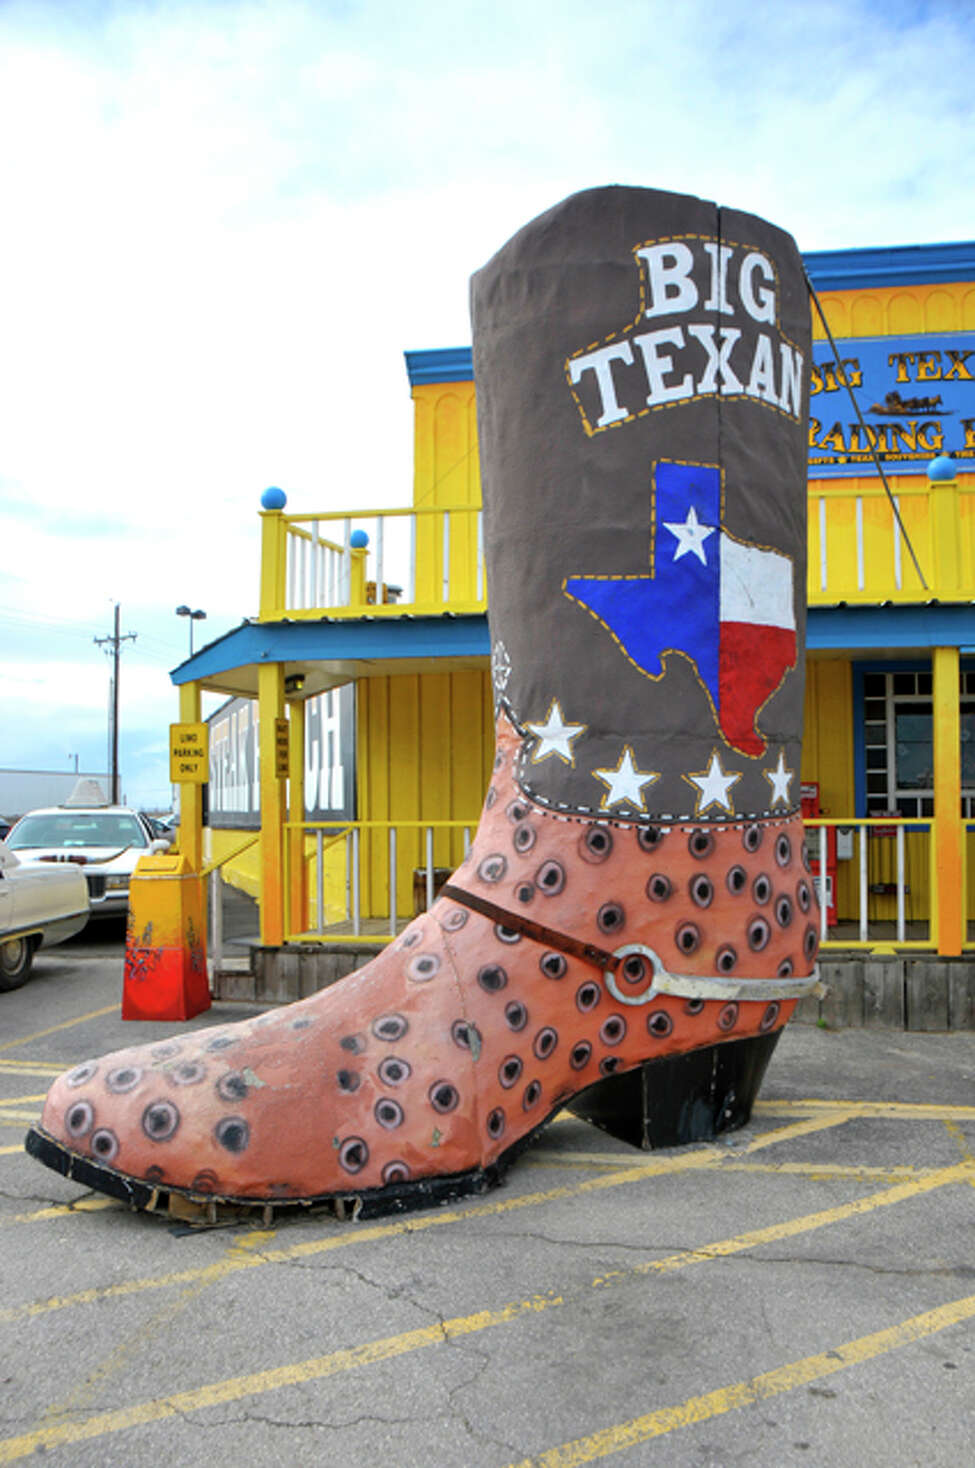 The Big Texan Steak Ranch Amarillo,7701 Interstate 40 Access Road Downing a 72-ounce steak, priced at $72, will make you a winner. The reward? The pricey piece of meat will be free to anyone who can finish it in one seating.